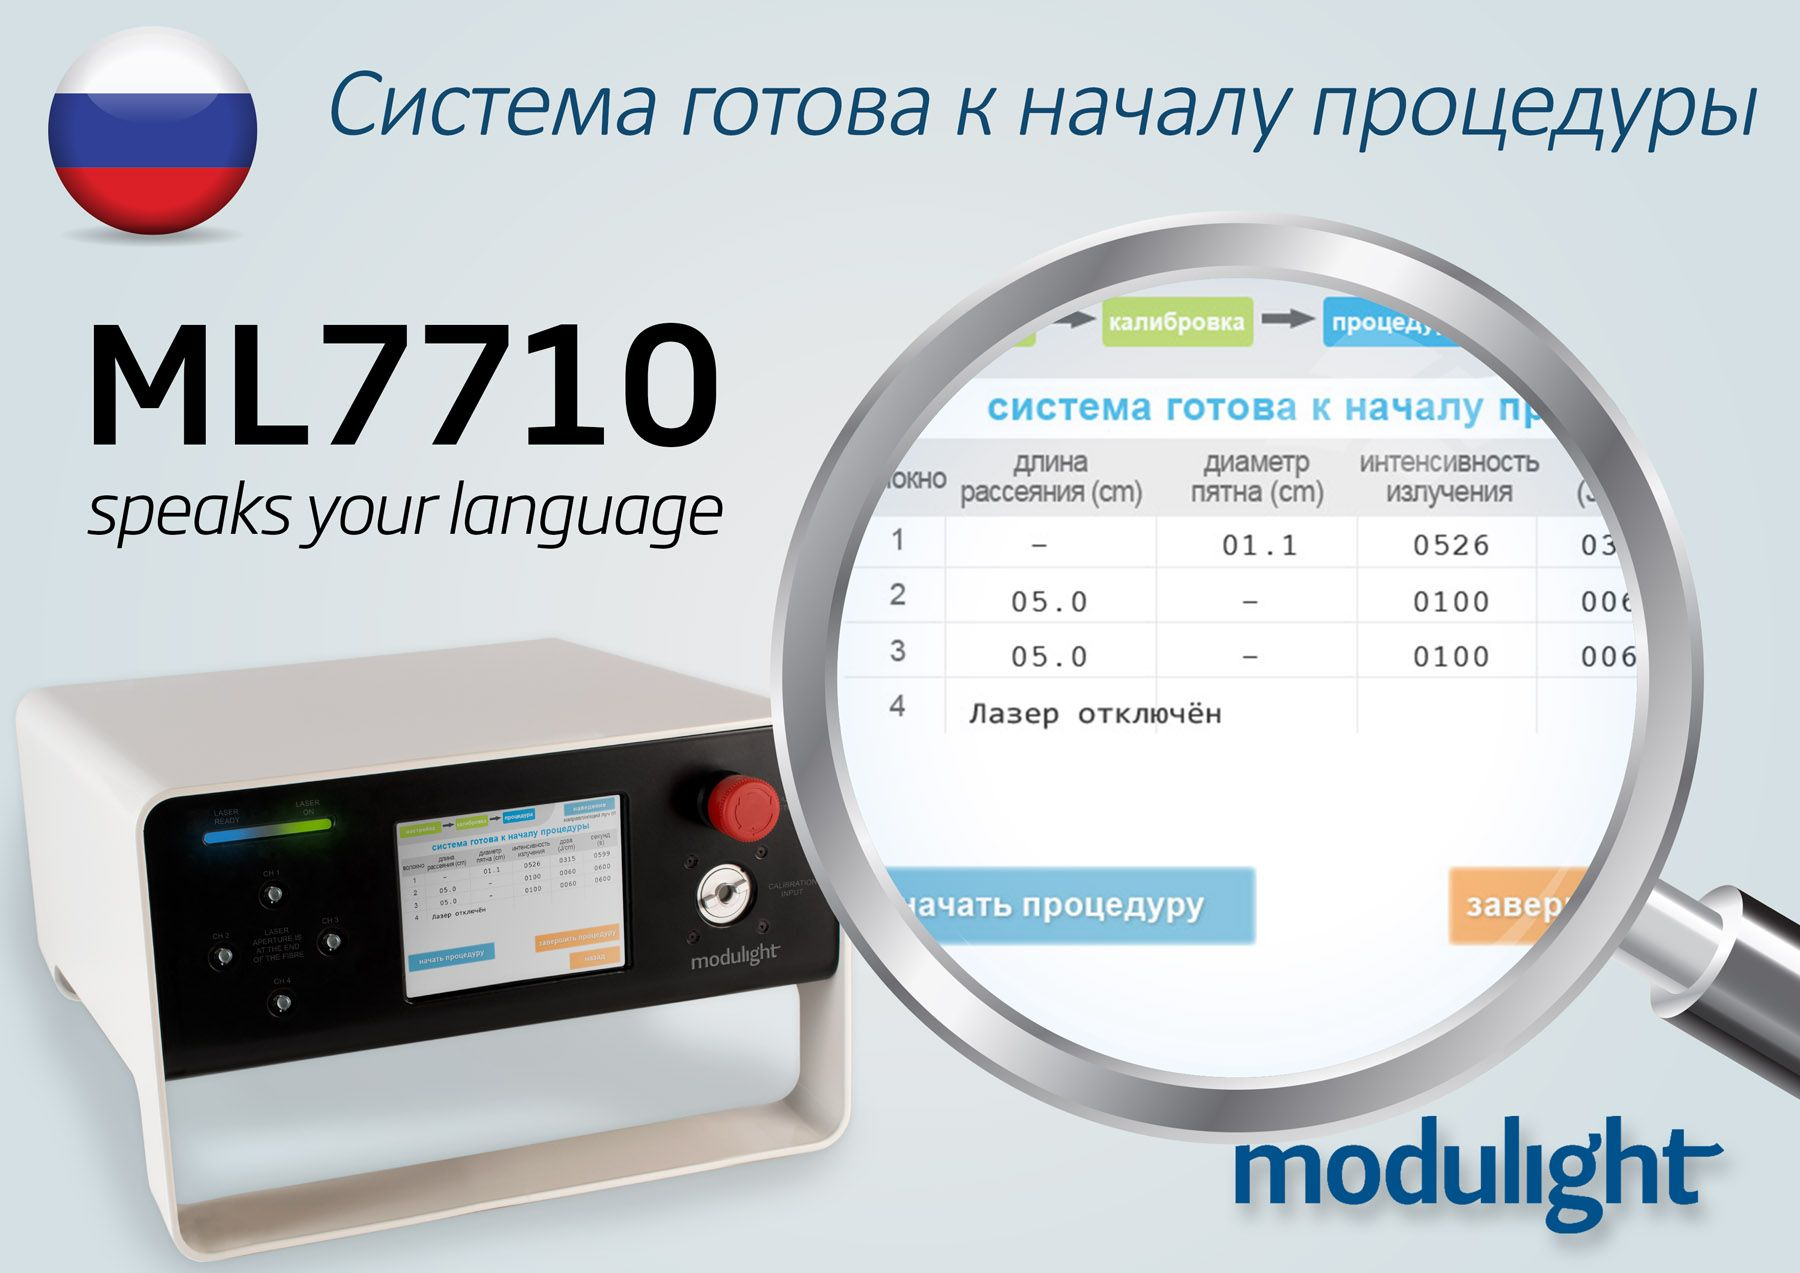 User interface now available in Russian!